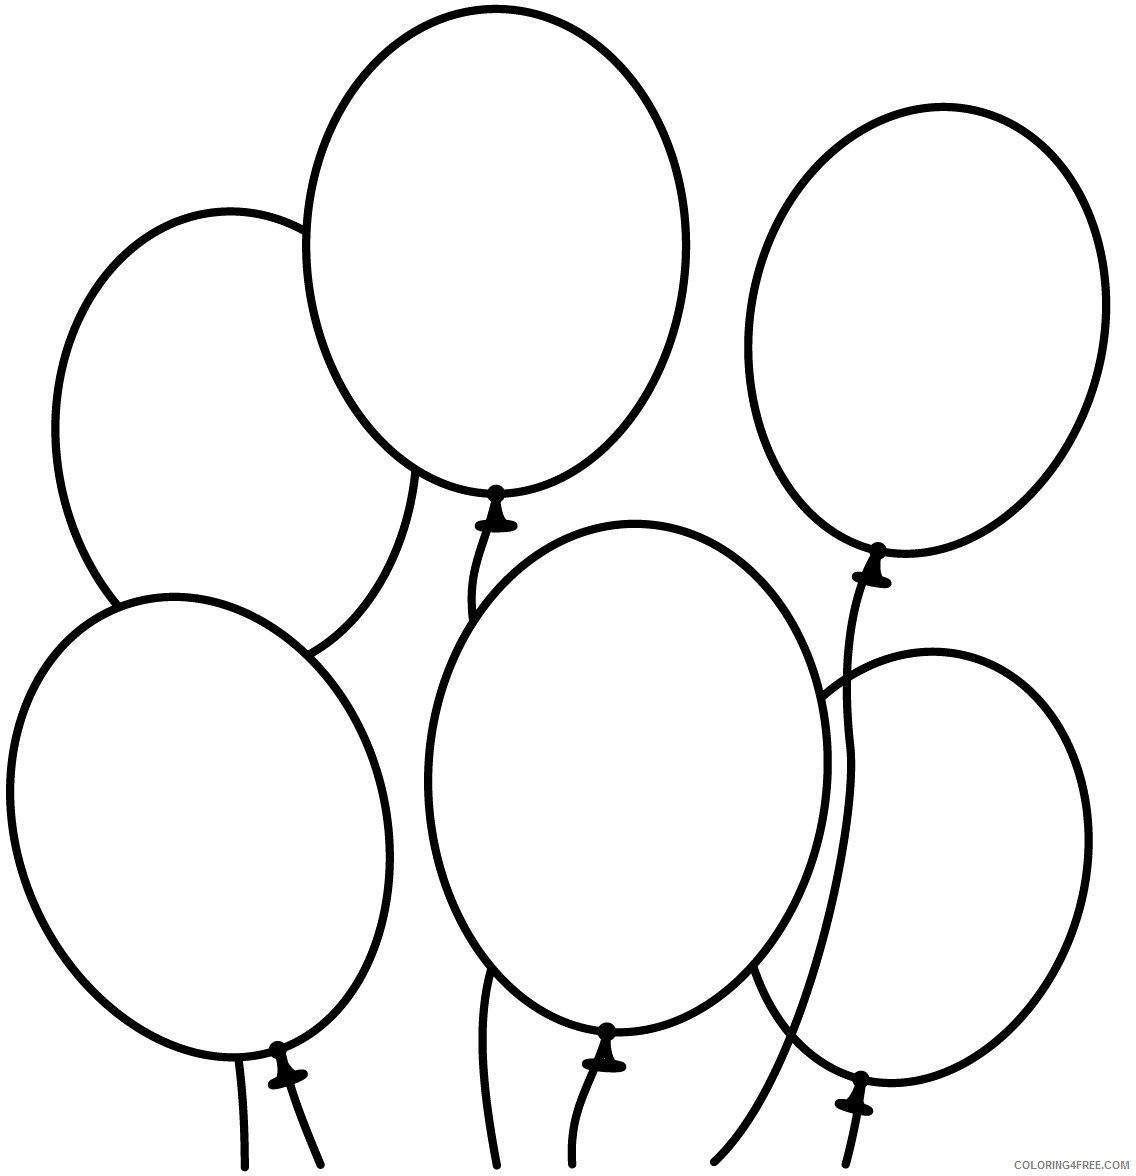 balloon coloring pages free to print Coloring4free